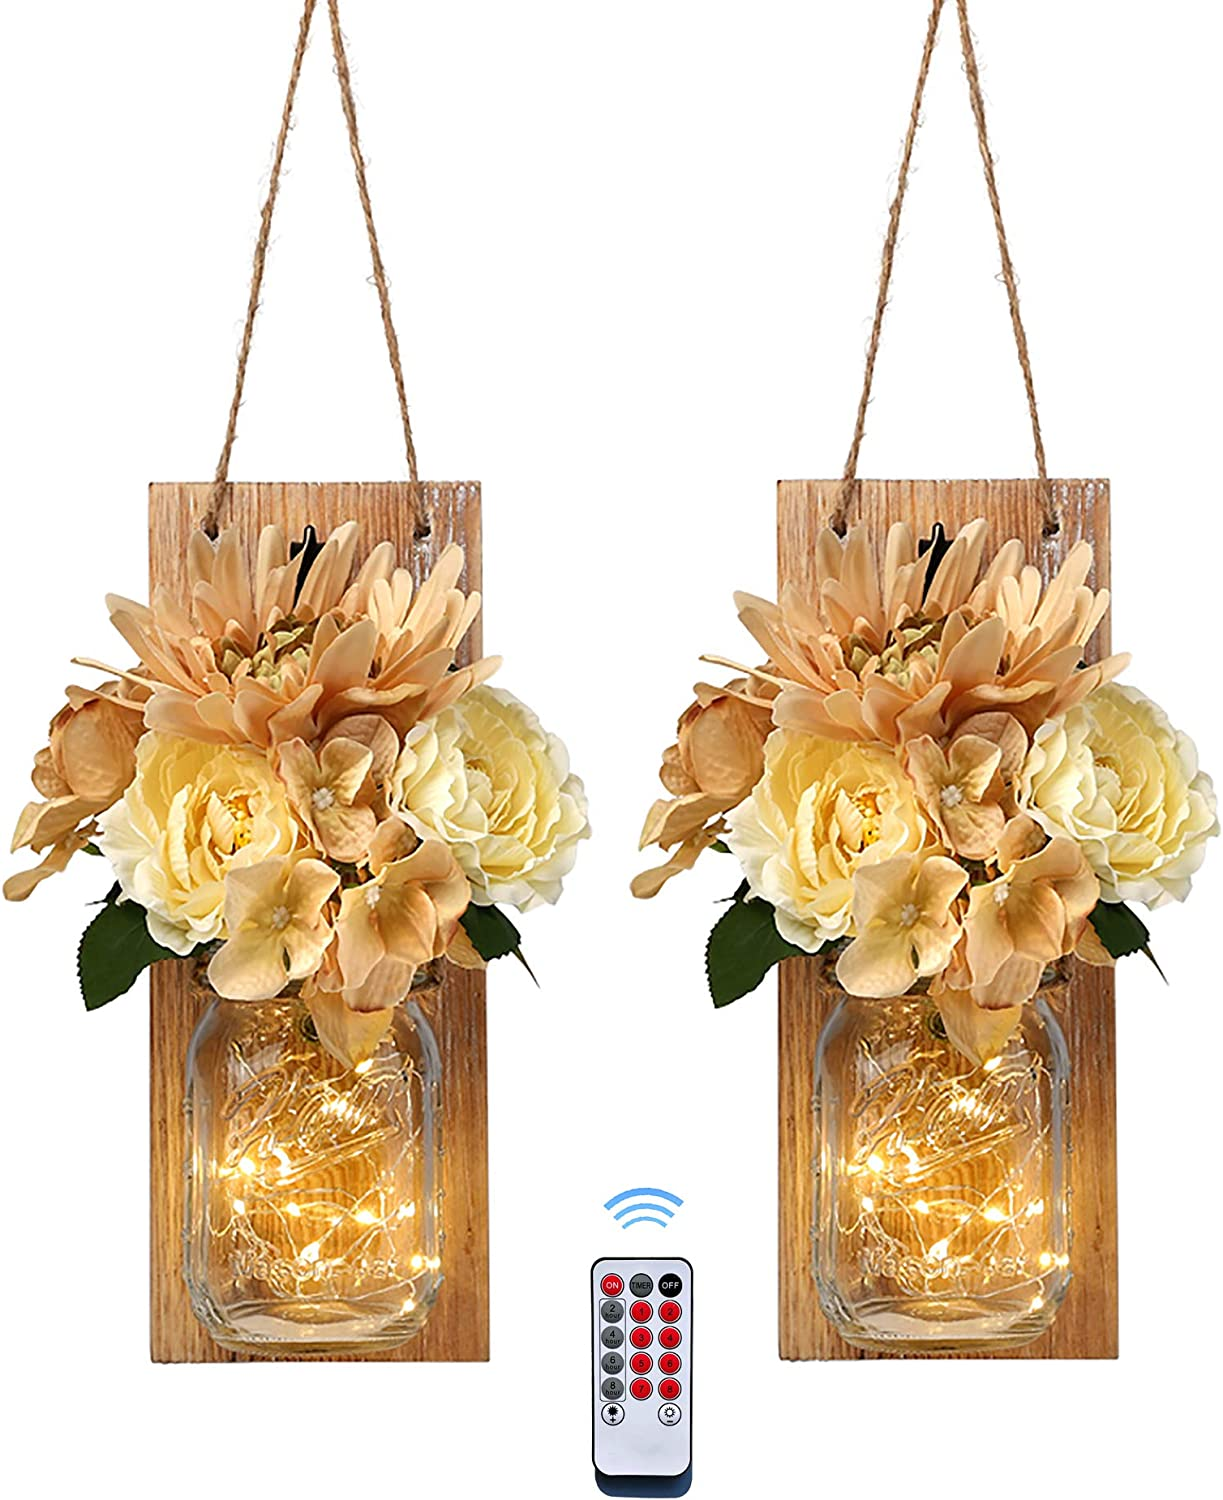 Besuerte Mason Jar Sconce Wall Art Home Decor -Farmhouse Sconces Wall Lighting with Wireless Remote for Living Room,Dining Room,Battery Operated LED Fairy Lights,Set of 2(Medium, Brown)